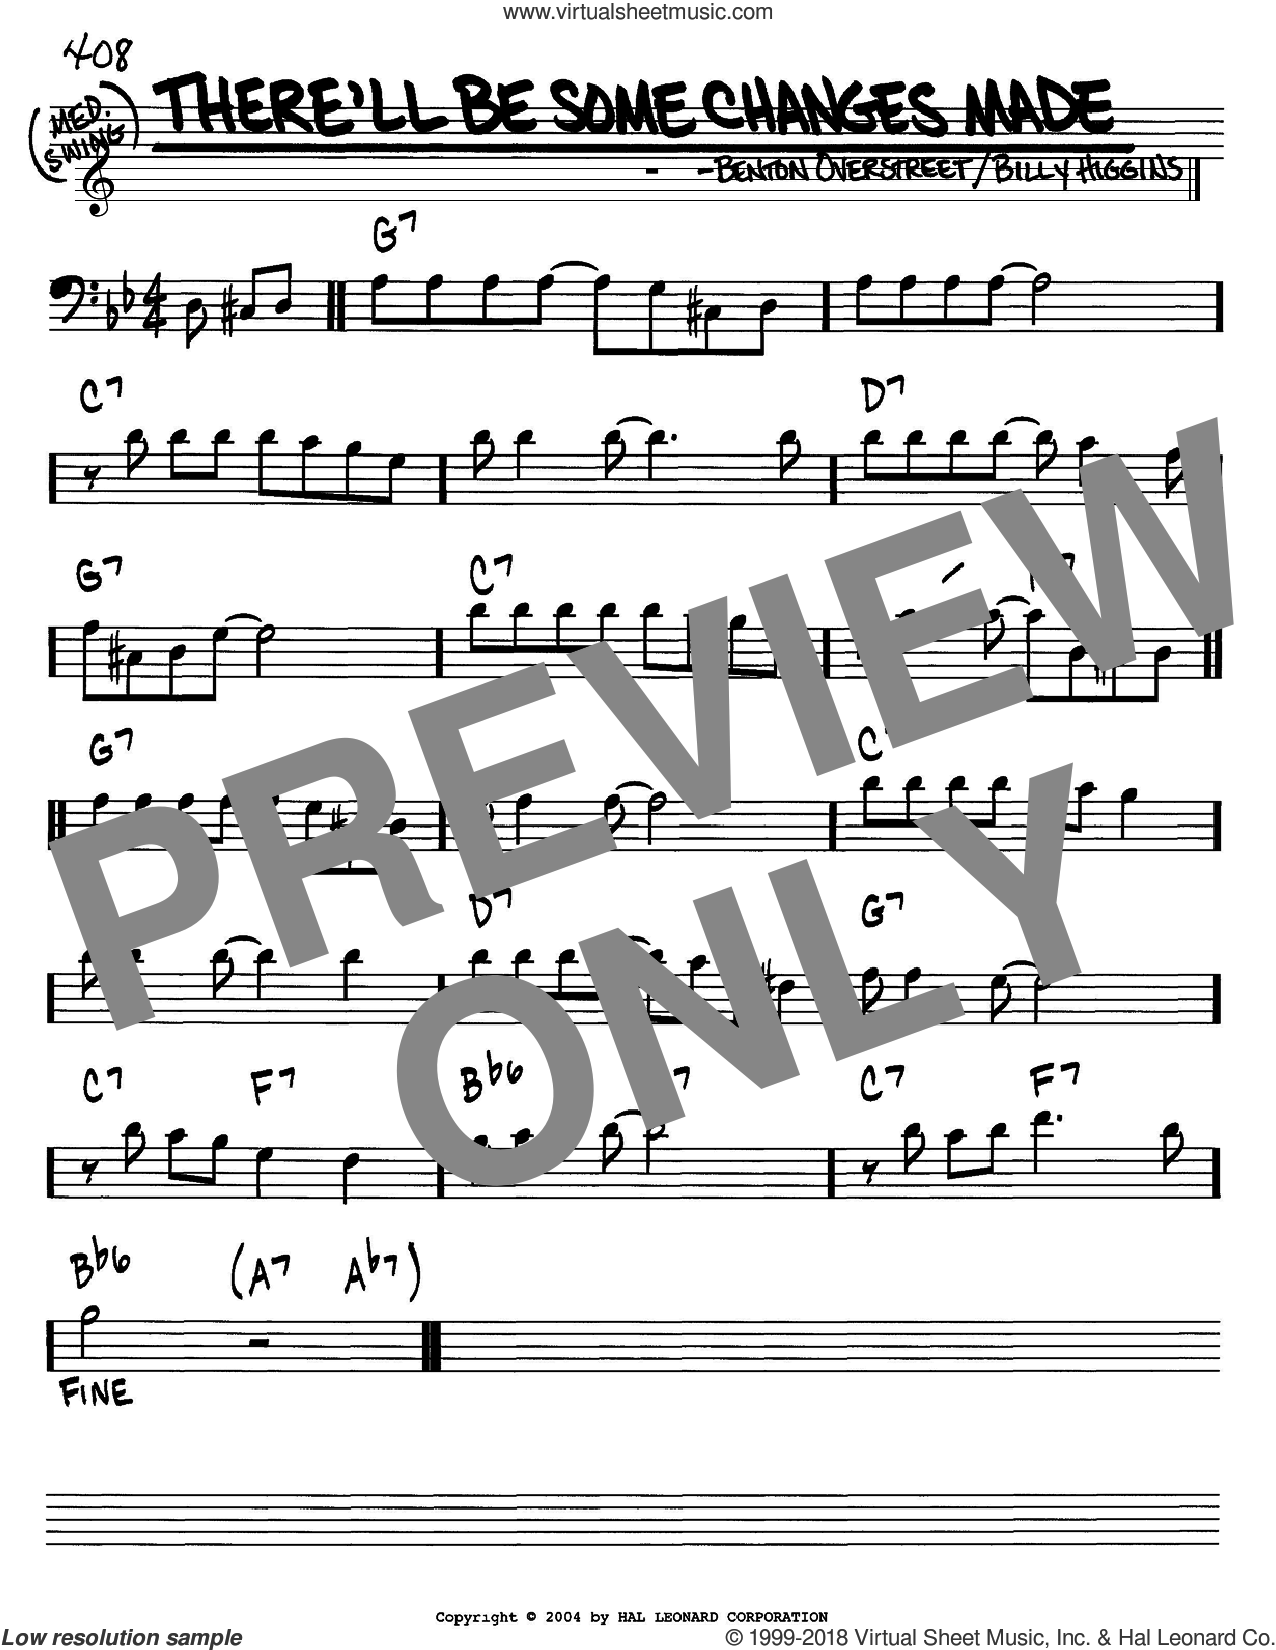 There'll Be Some Changes Made sheet music for voice and other instruments (bass clef) by Billy Higgins and W. Benton Overstreet, intermediate. Score Image Preview.